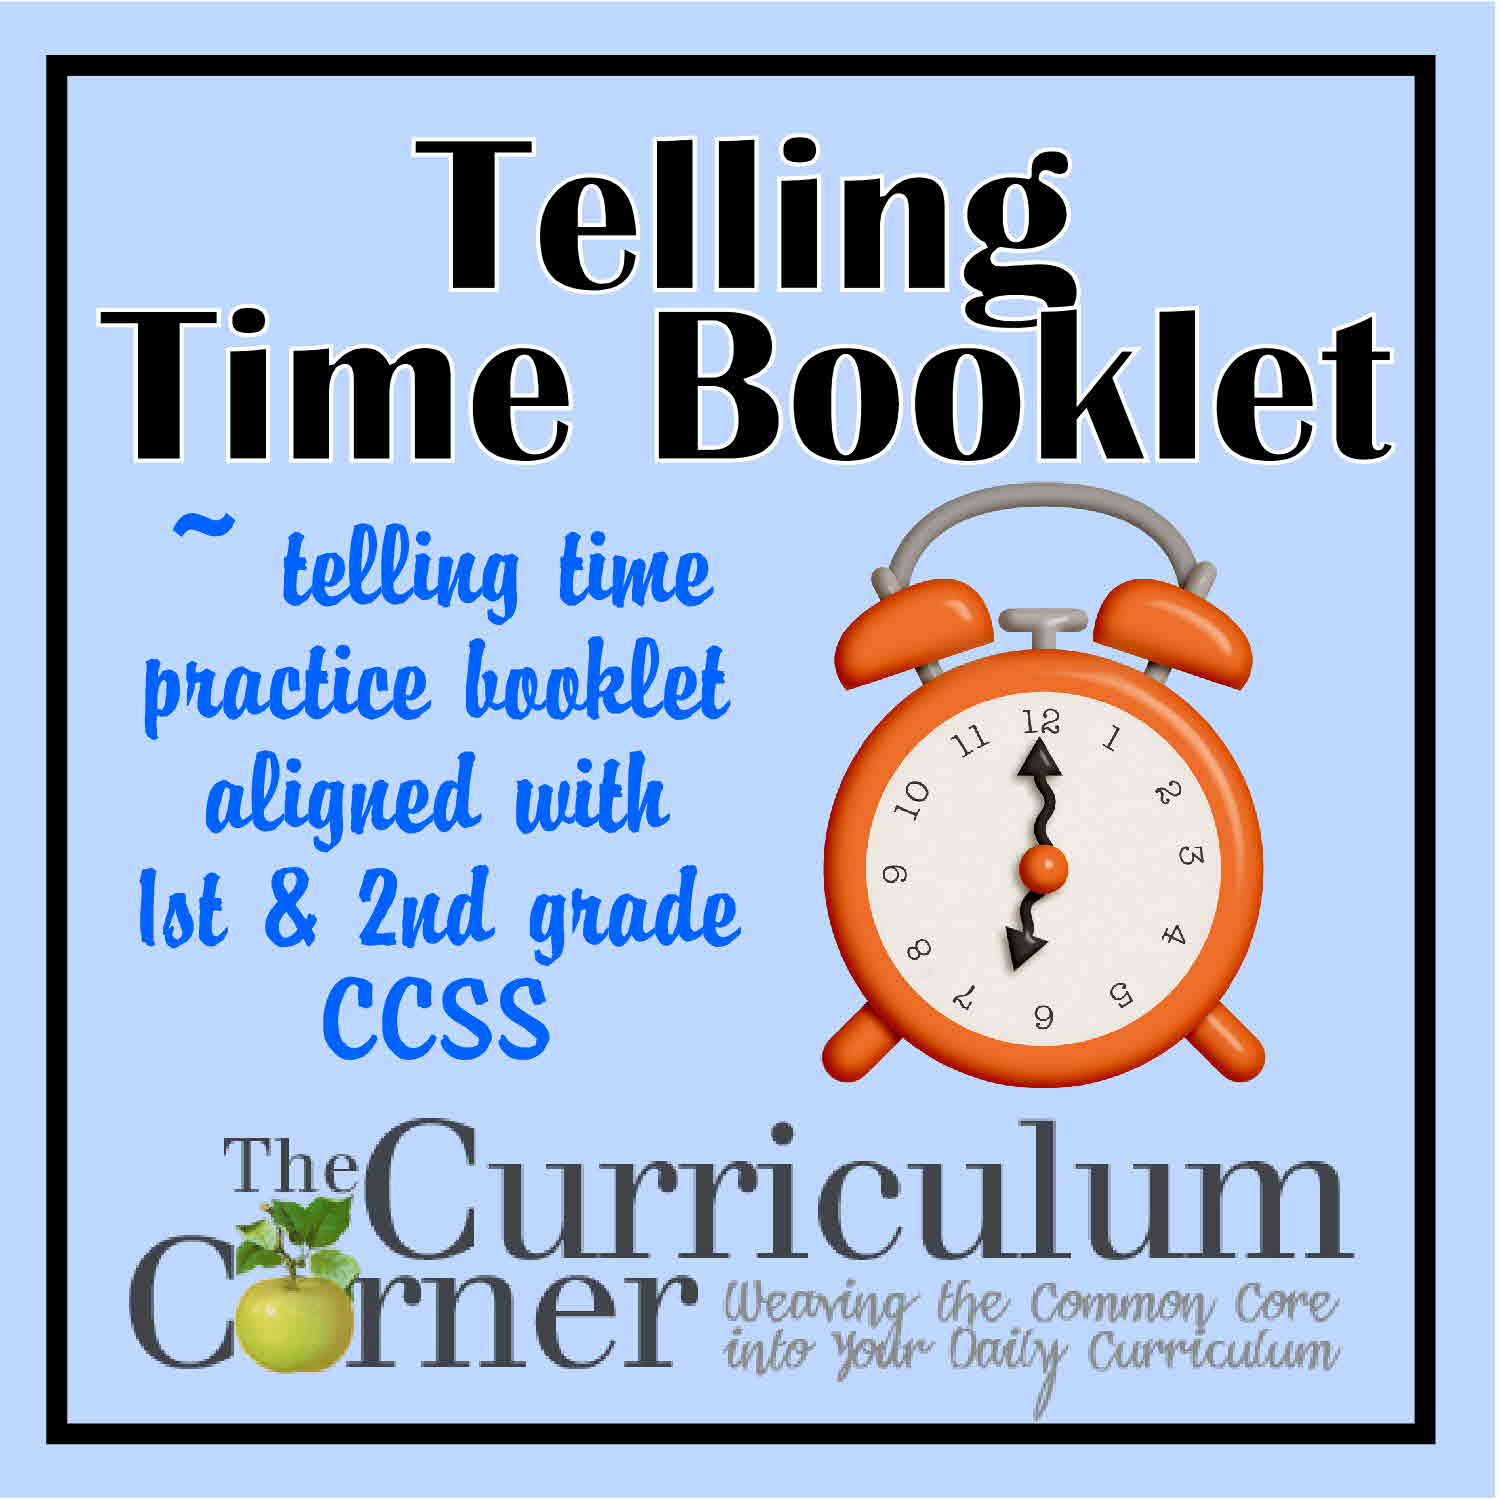 Telling Time Practice Booklet The Curriculum Corner 123